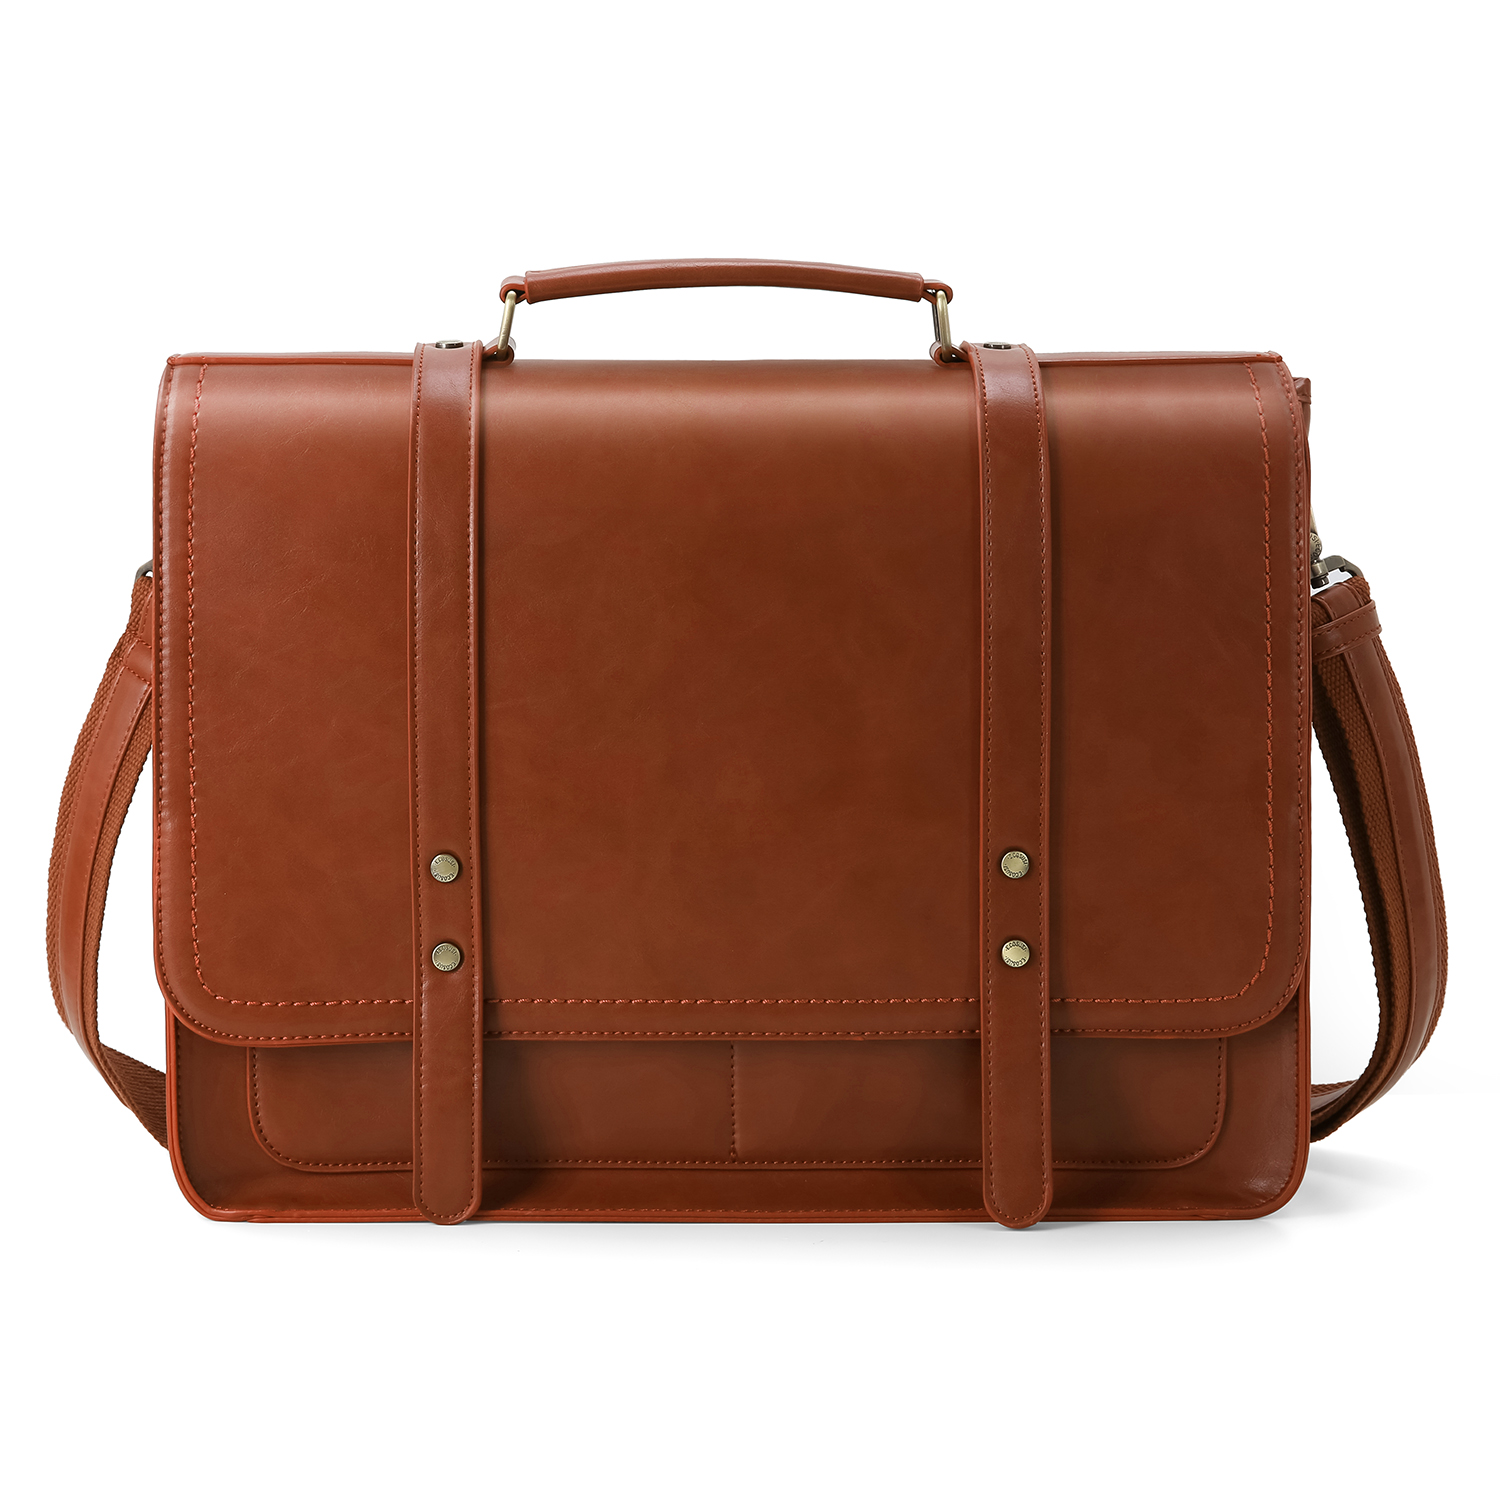 Men Travel Bags Vintage Shoulder Bags Hand Luggage apricot small size